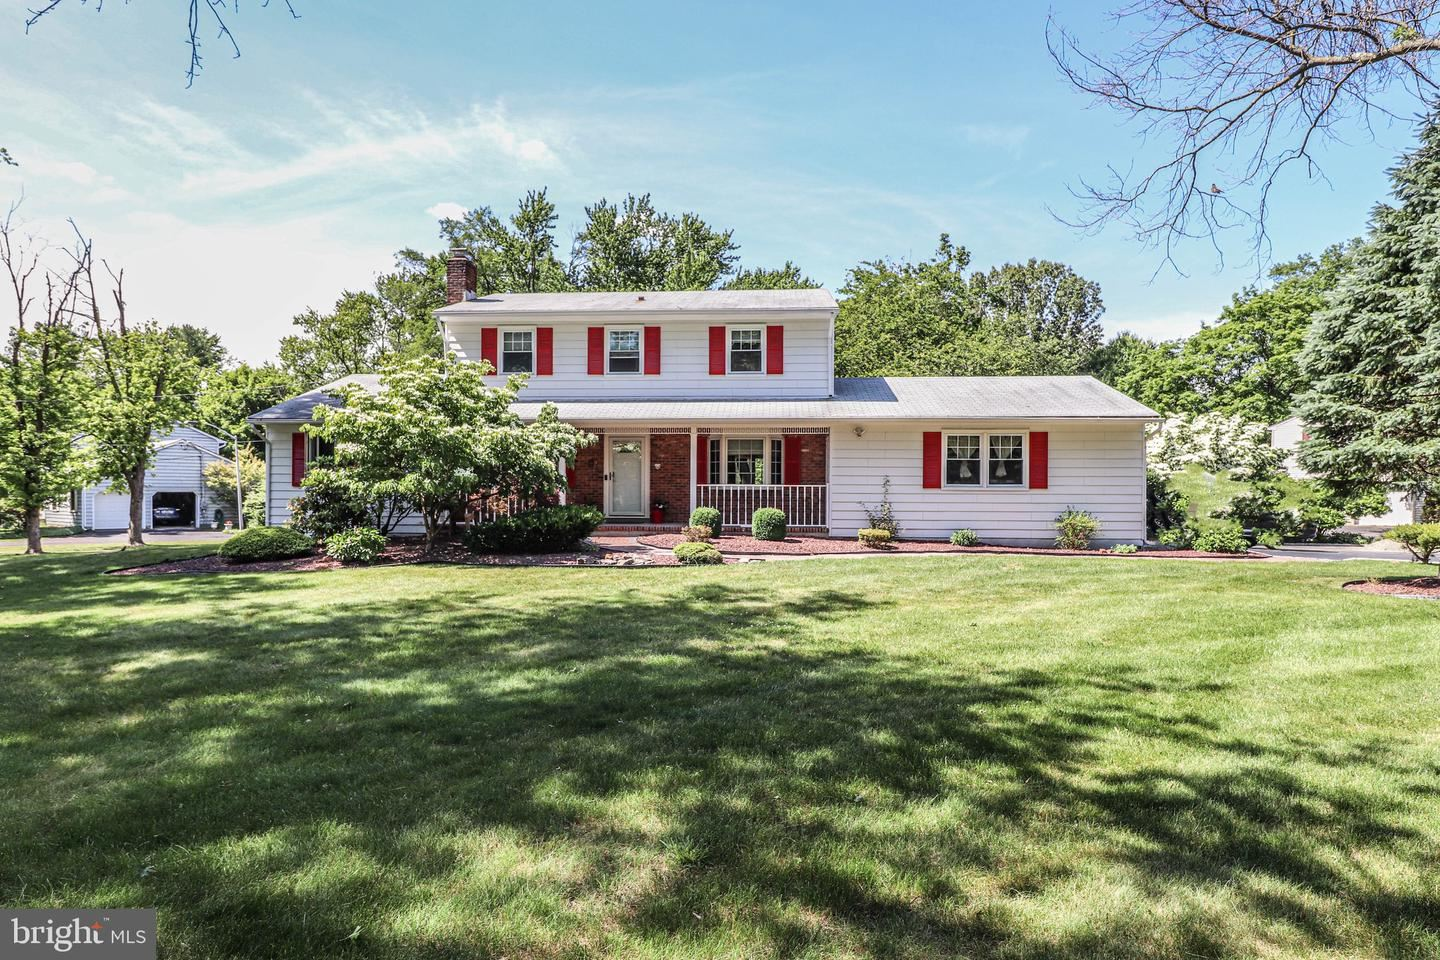 40 QUAKER RD, Princeton Junction, NJ 08550 - #: NJME296834